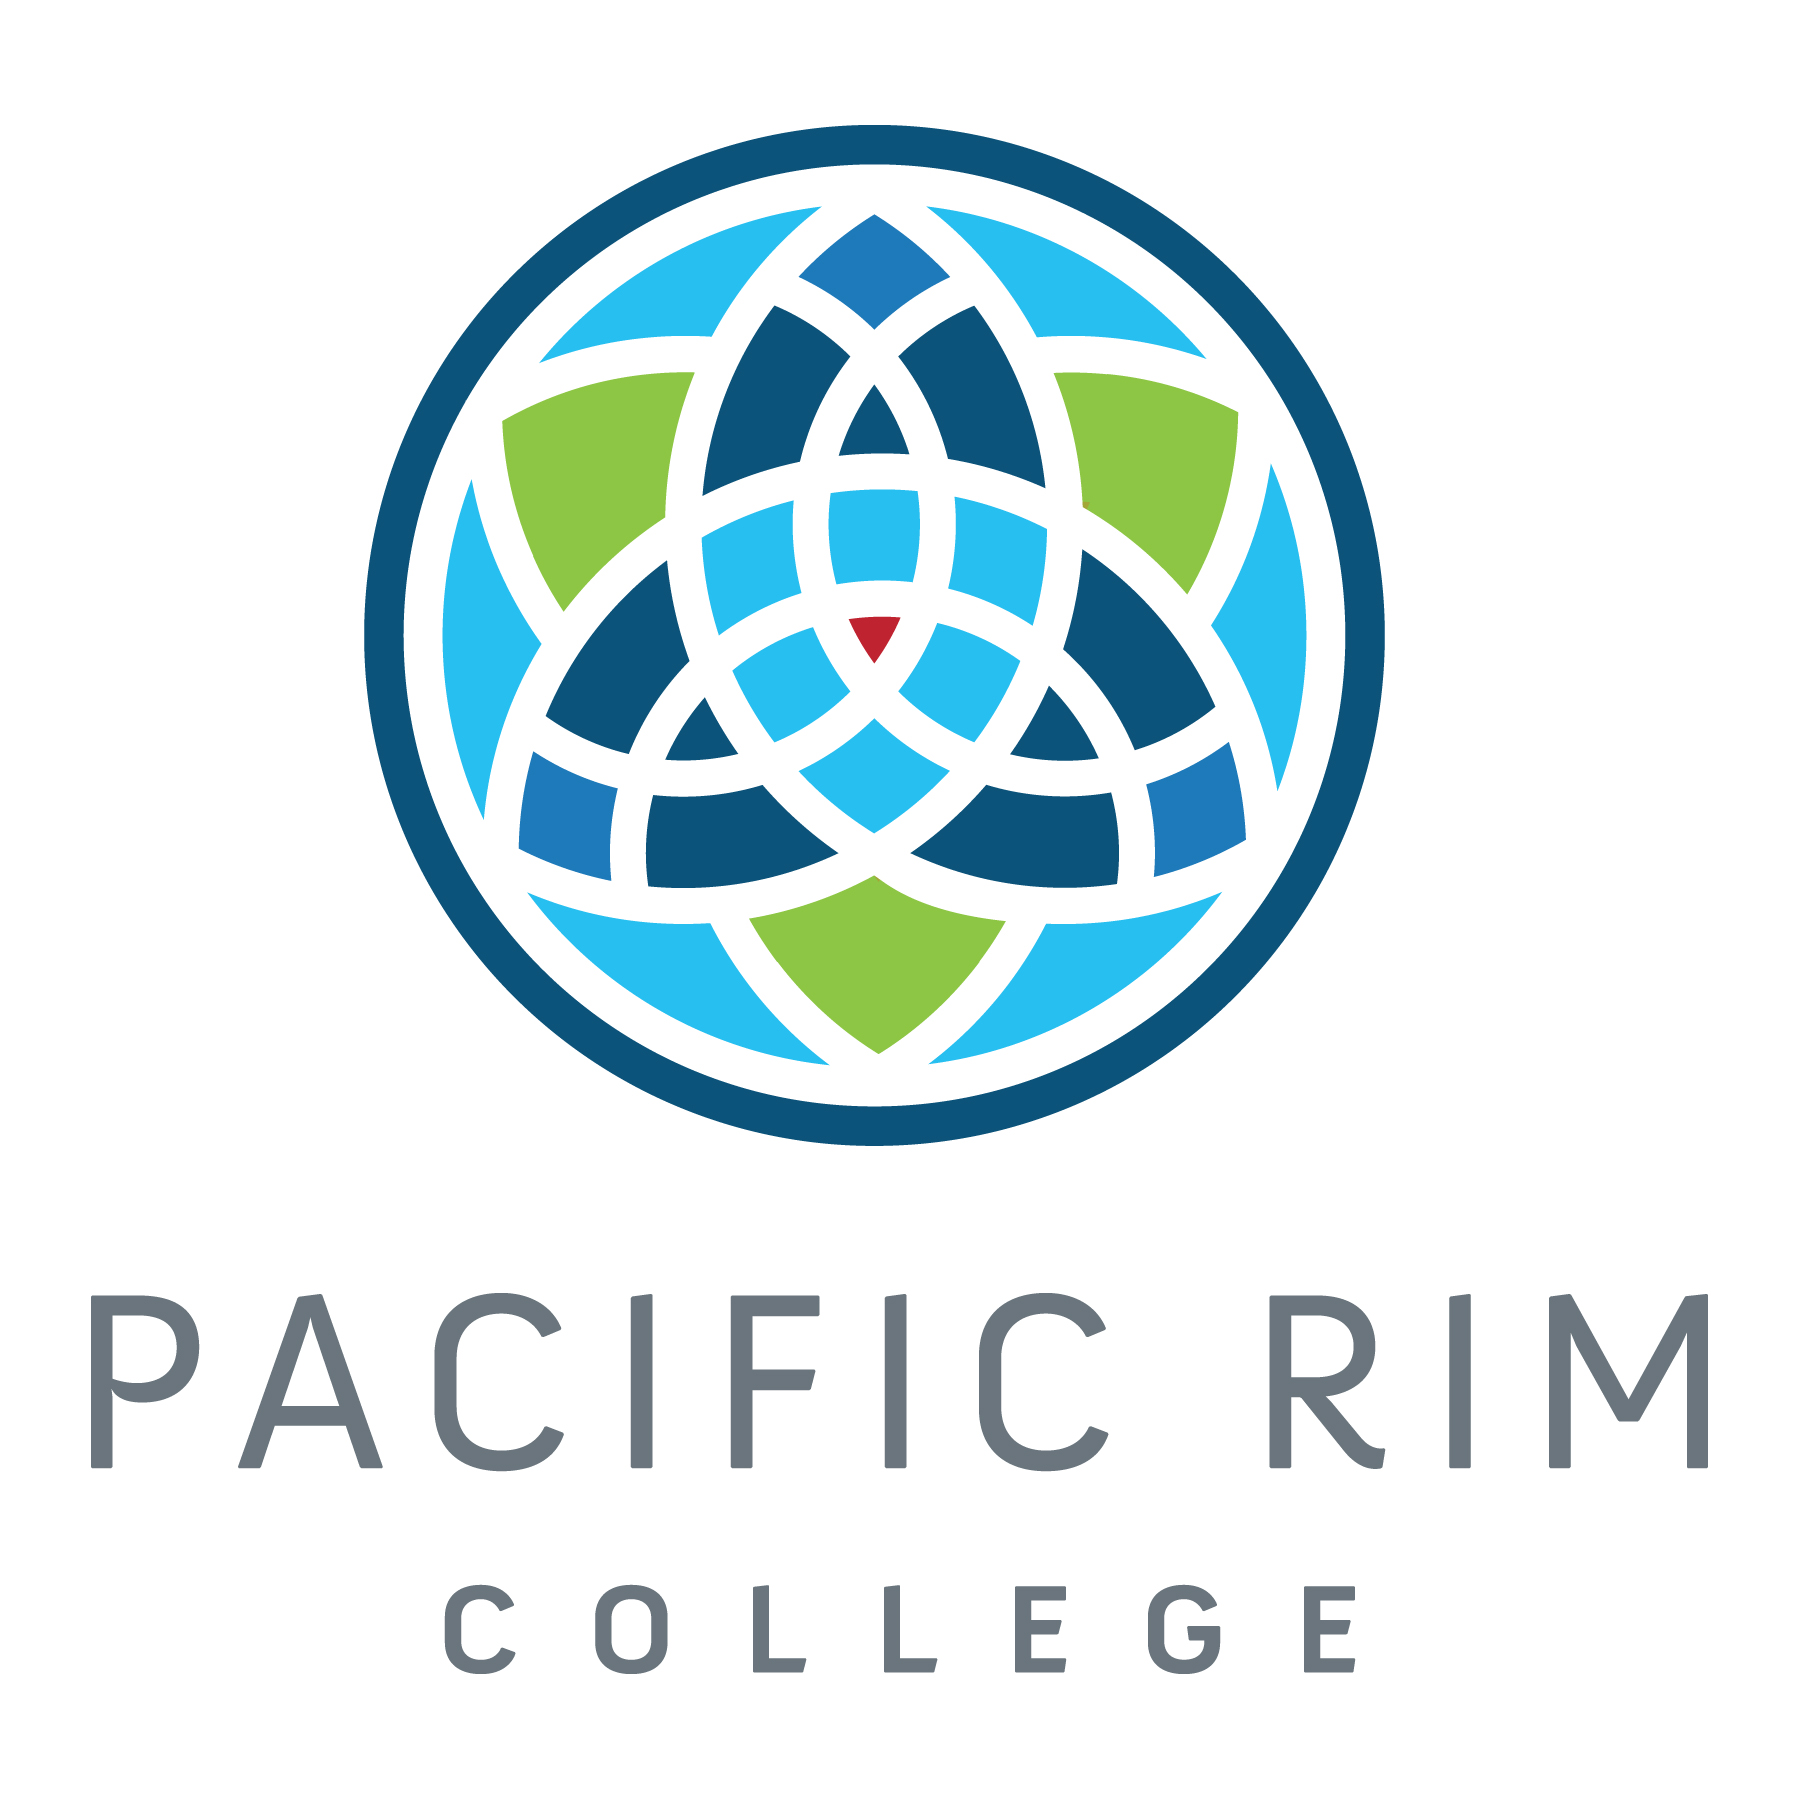 Pacific Rim College logo